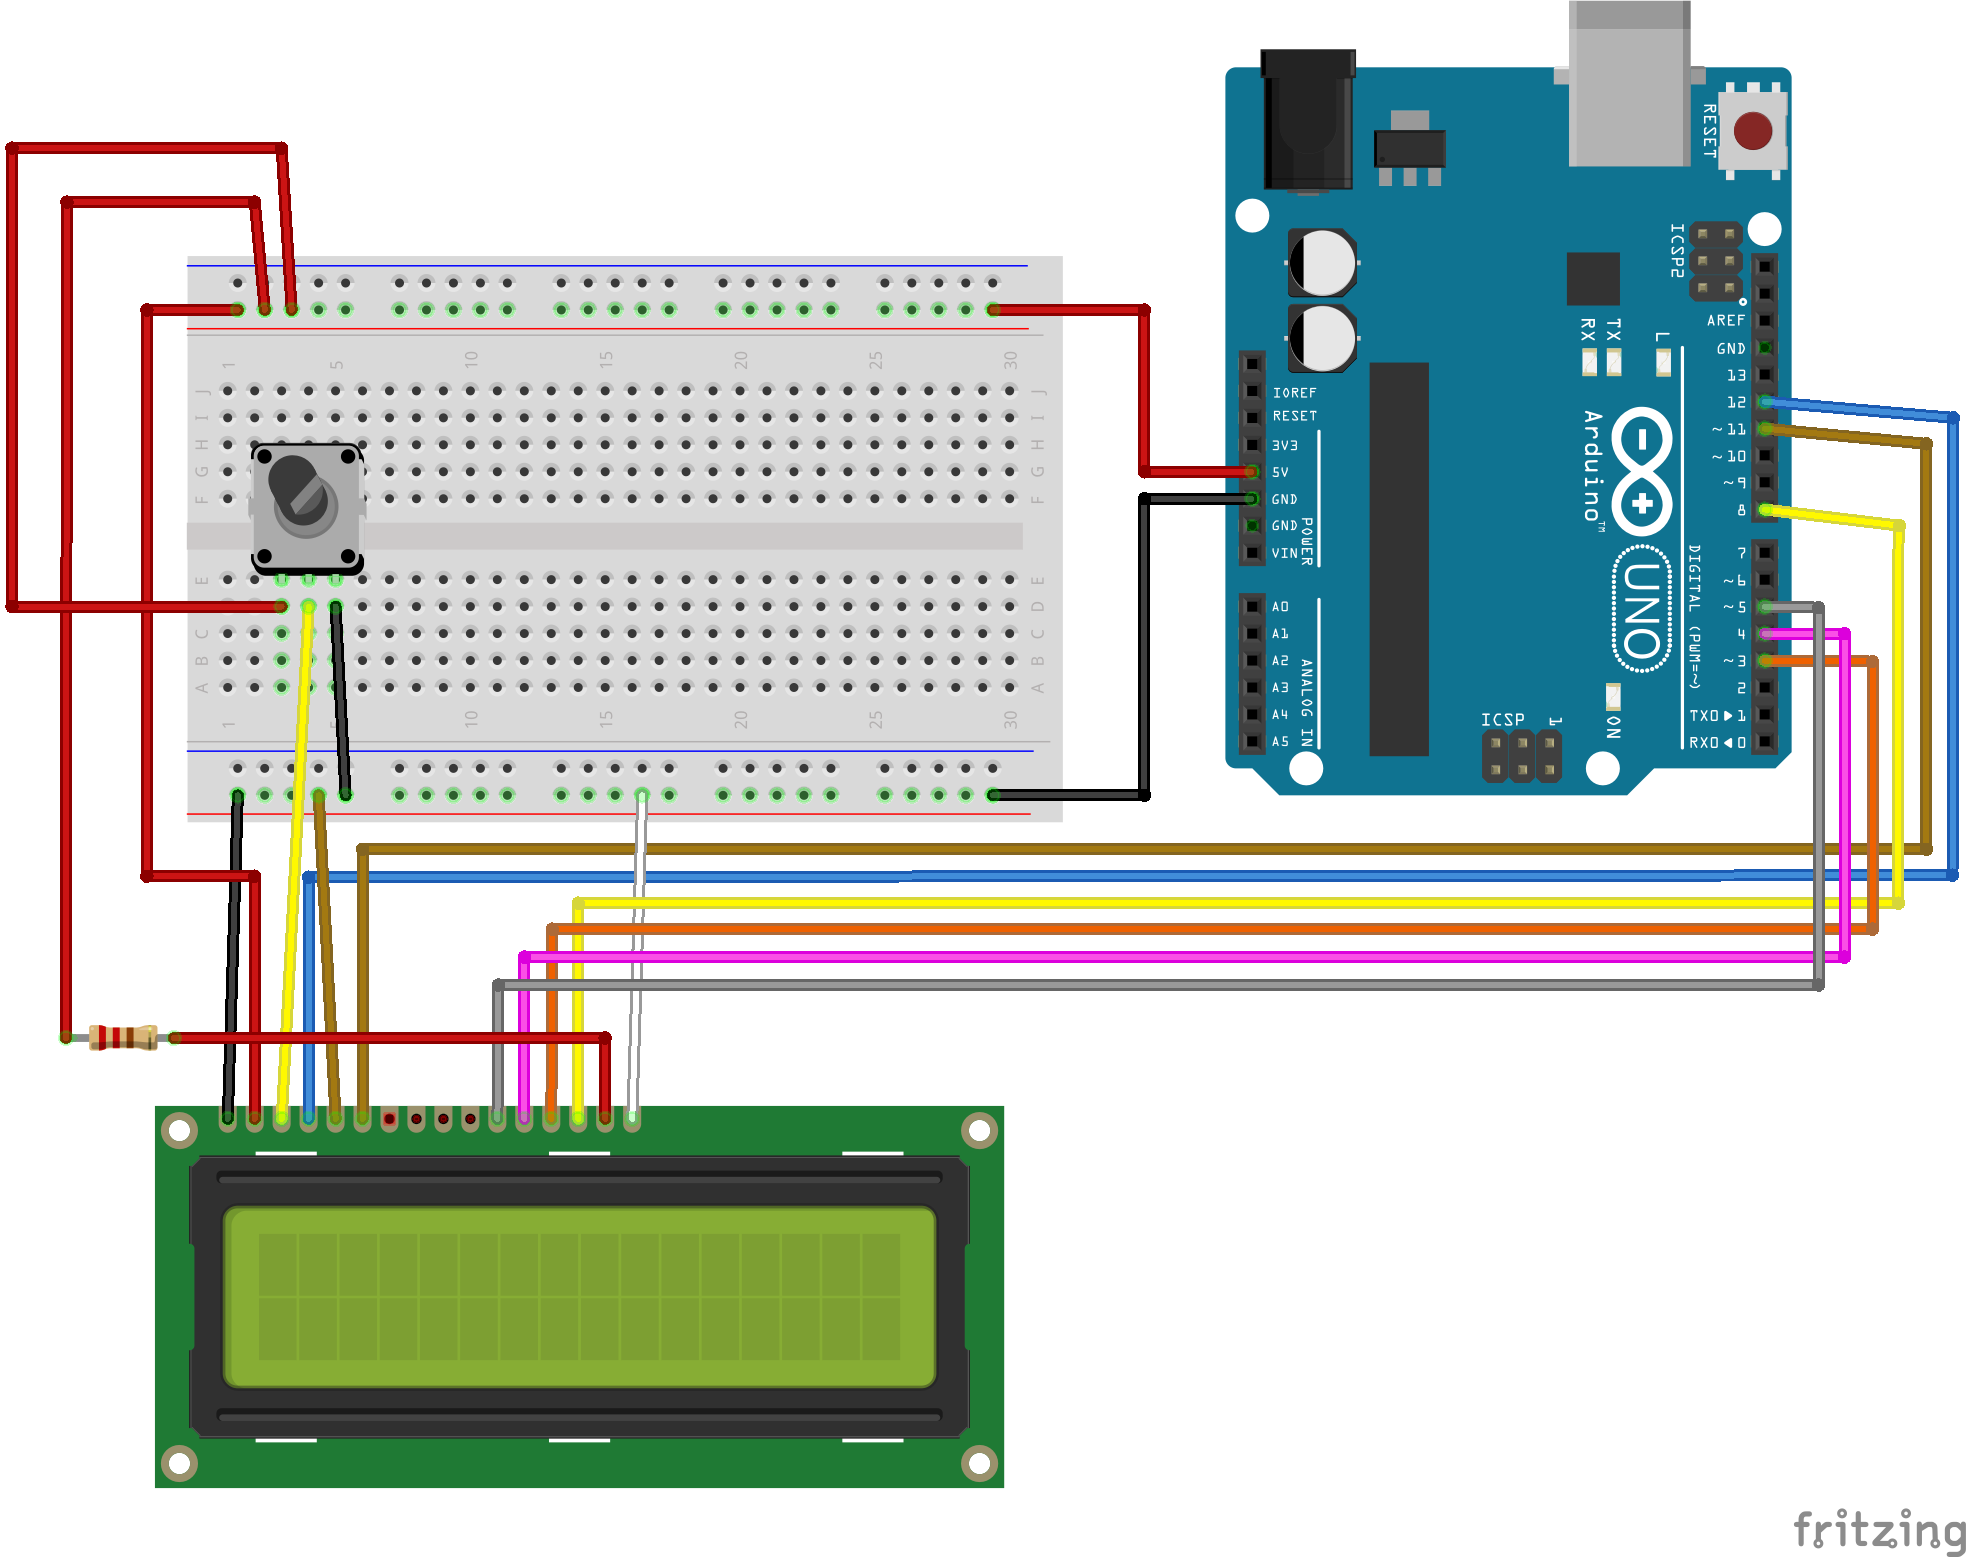 Wiring the LCD with Arduino